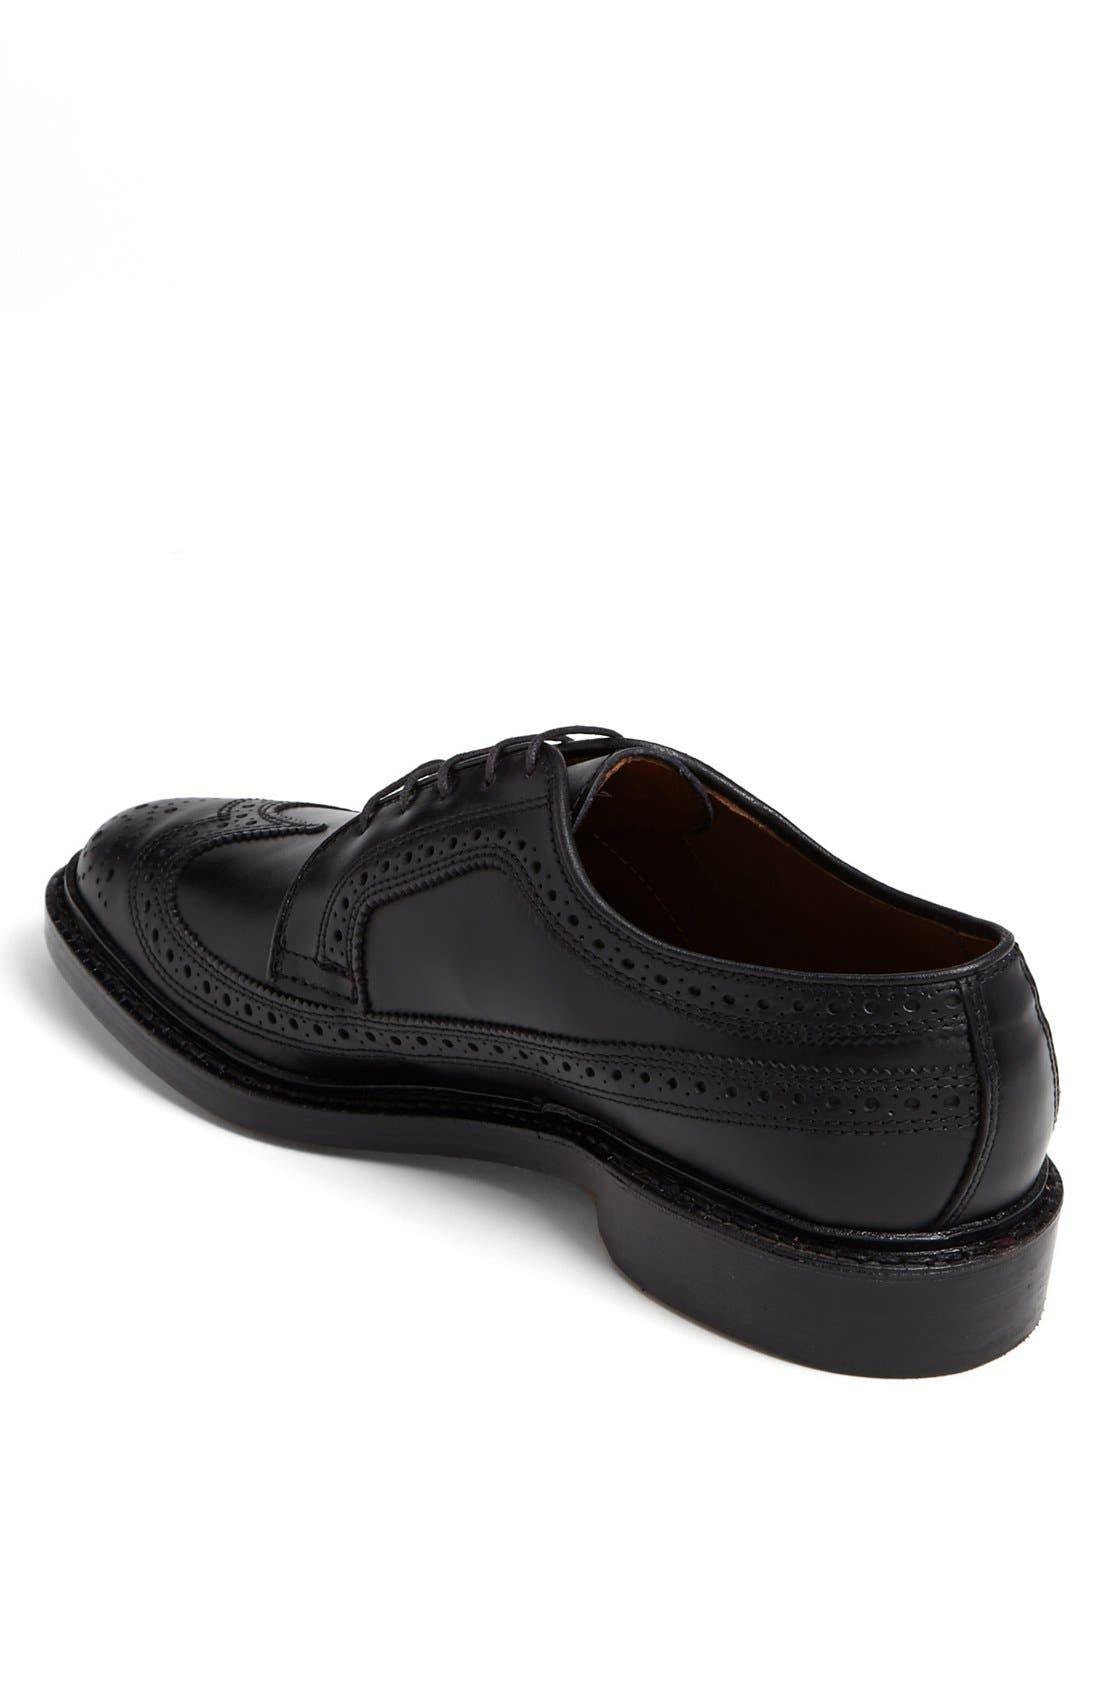 Alternate Image 2  - Allen Edmonds 'MacNeil' Oxford (Men)